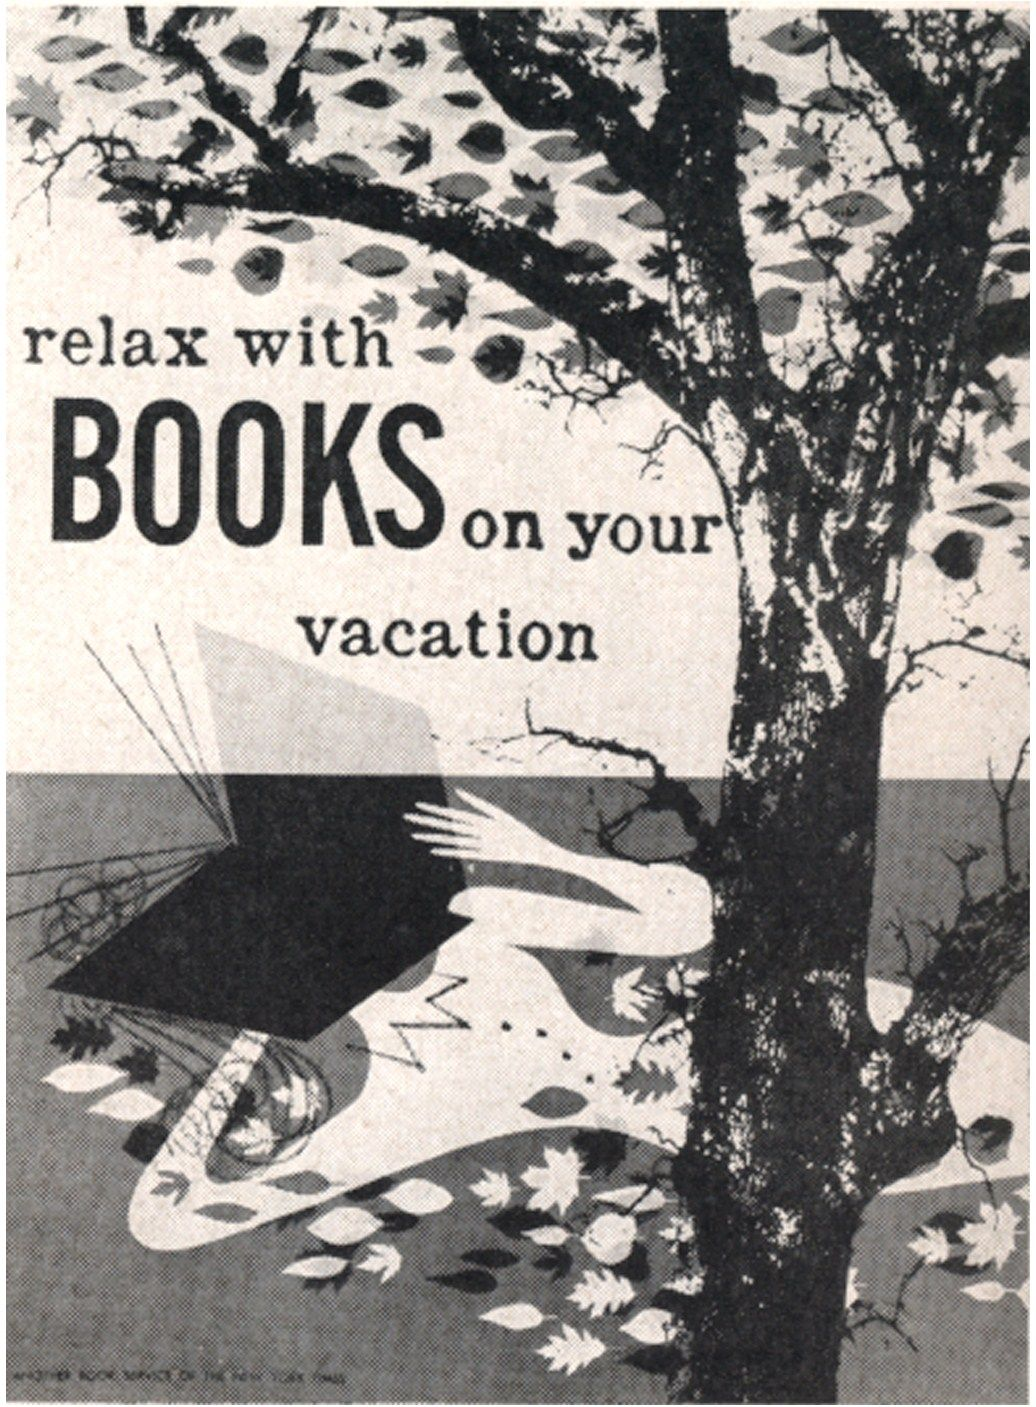 Relax with books on your vacation!